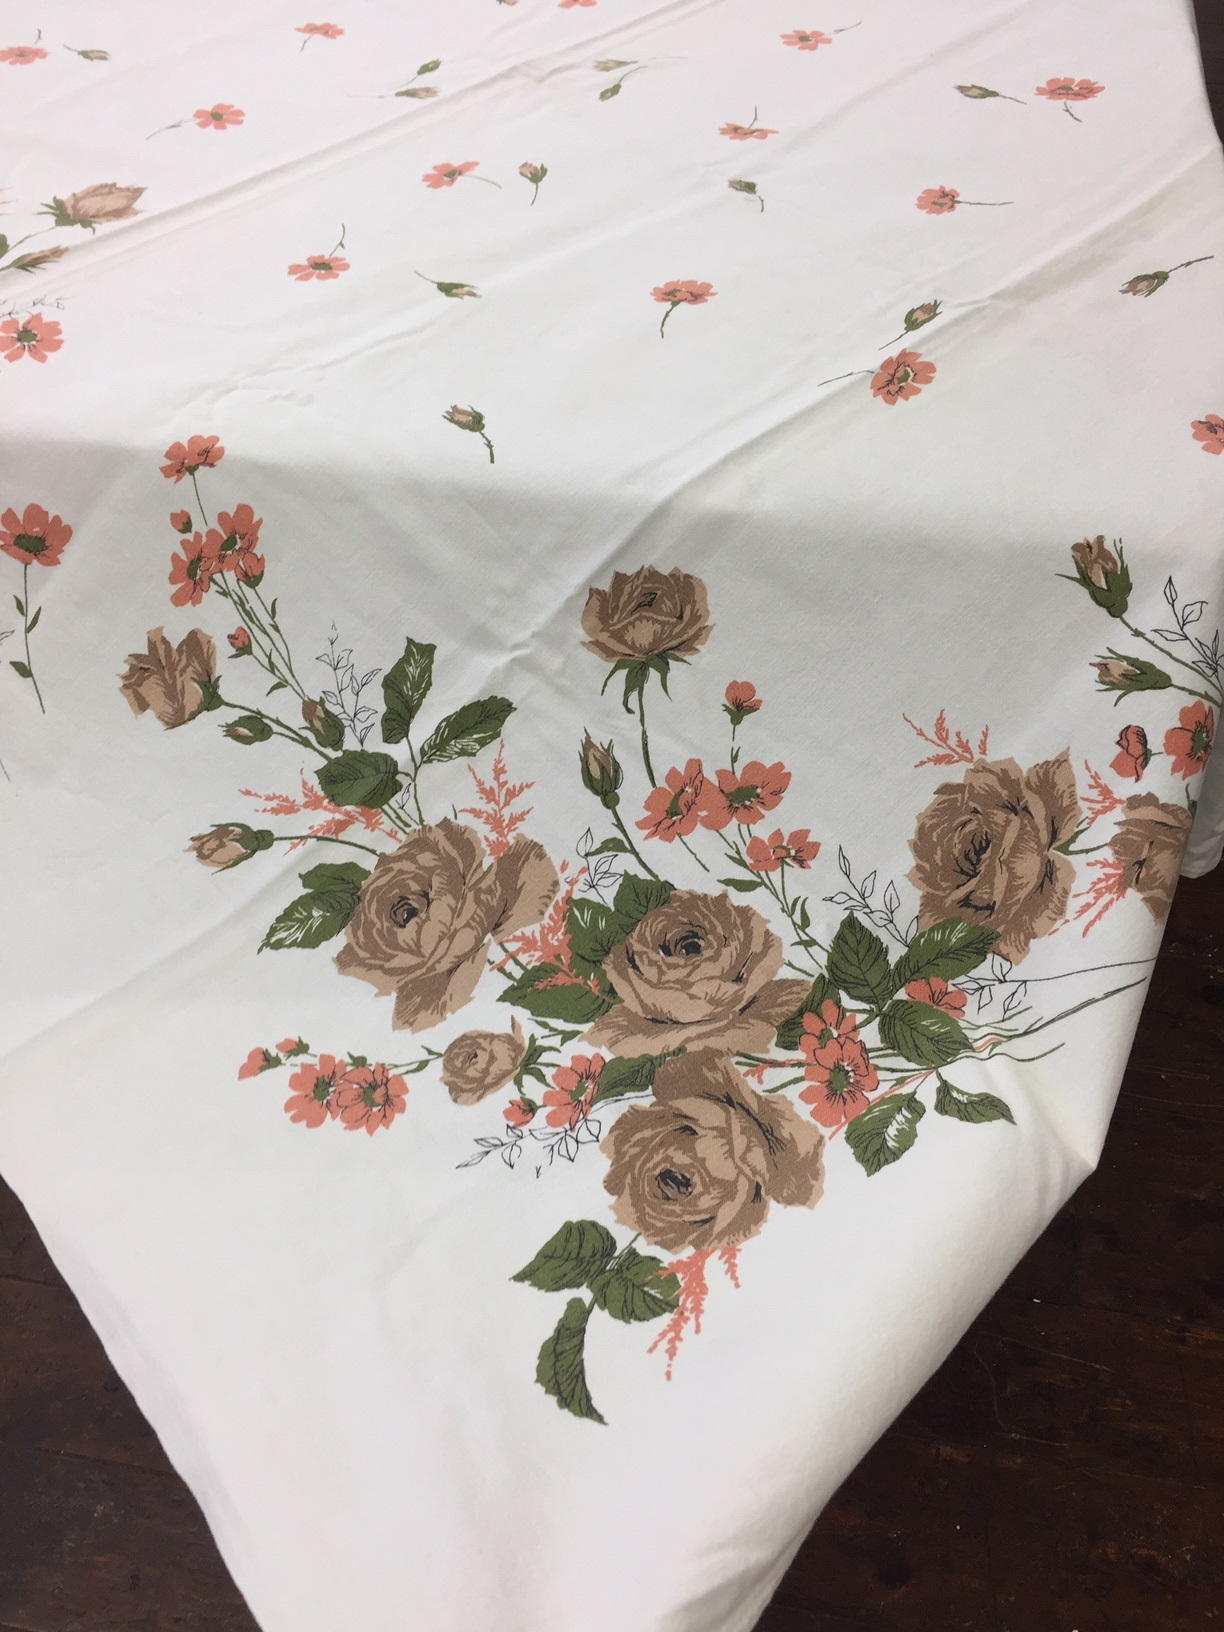 Vintage Tablecloth - Fall Floral